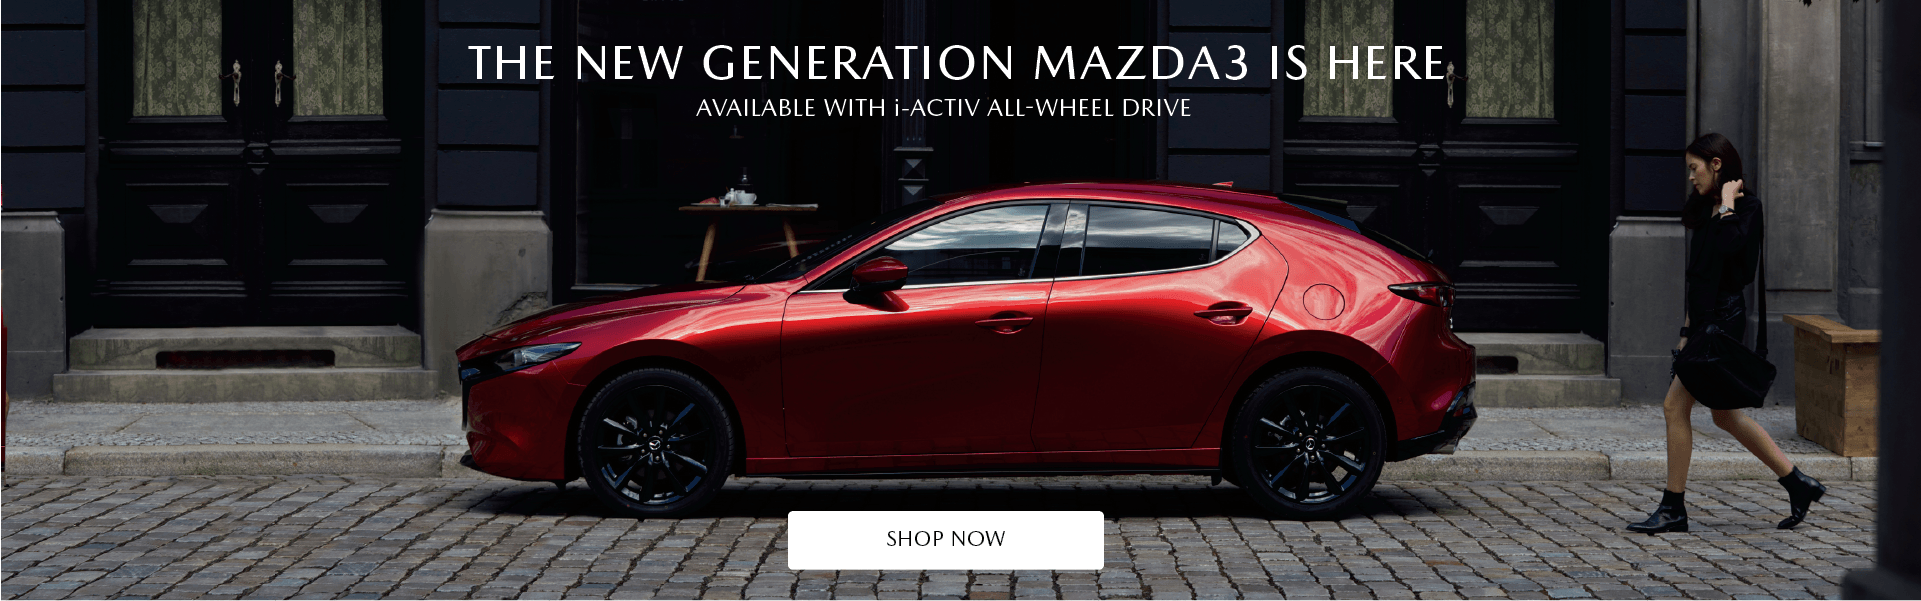 The new generation Mazda3 - Available with i-activ all-wheel drive